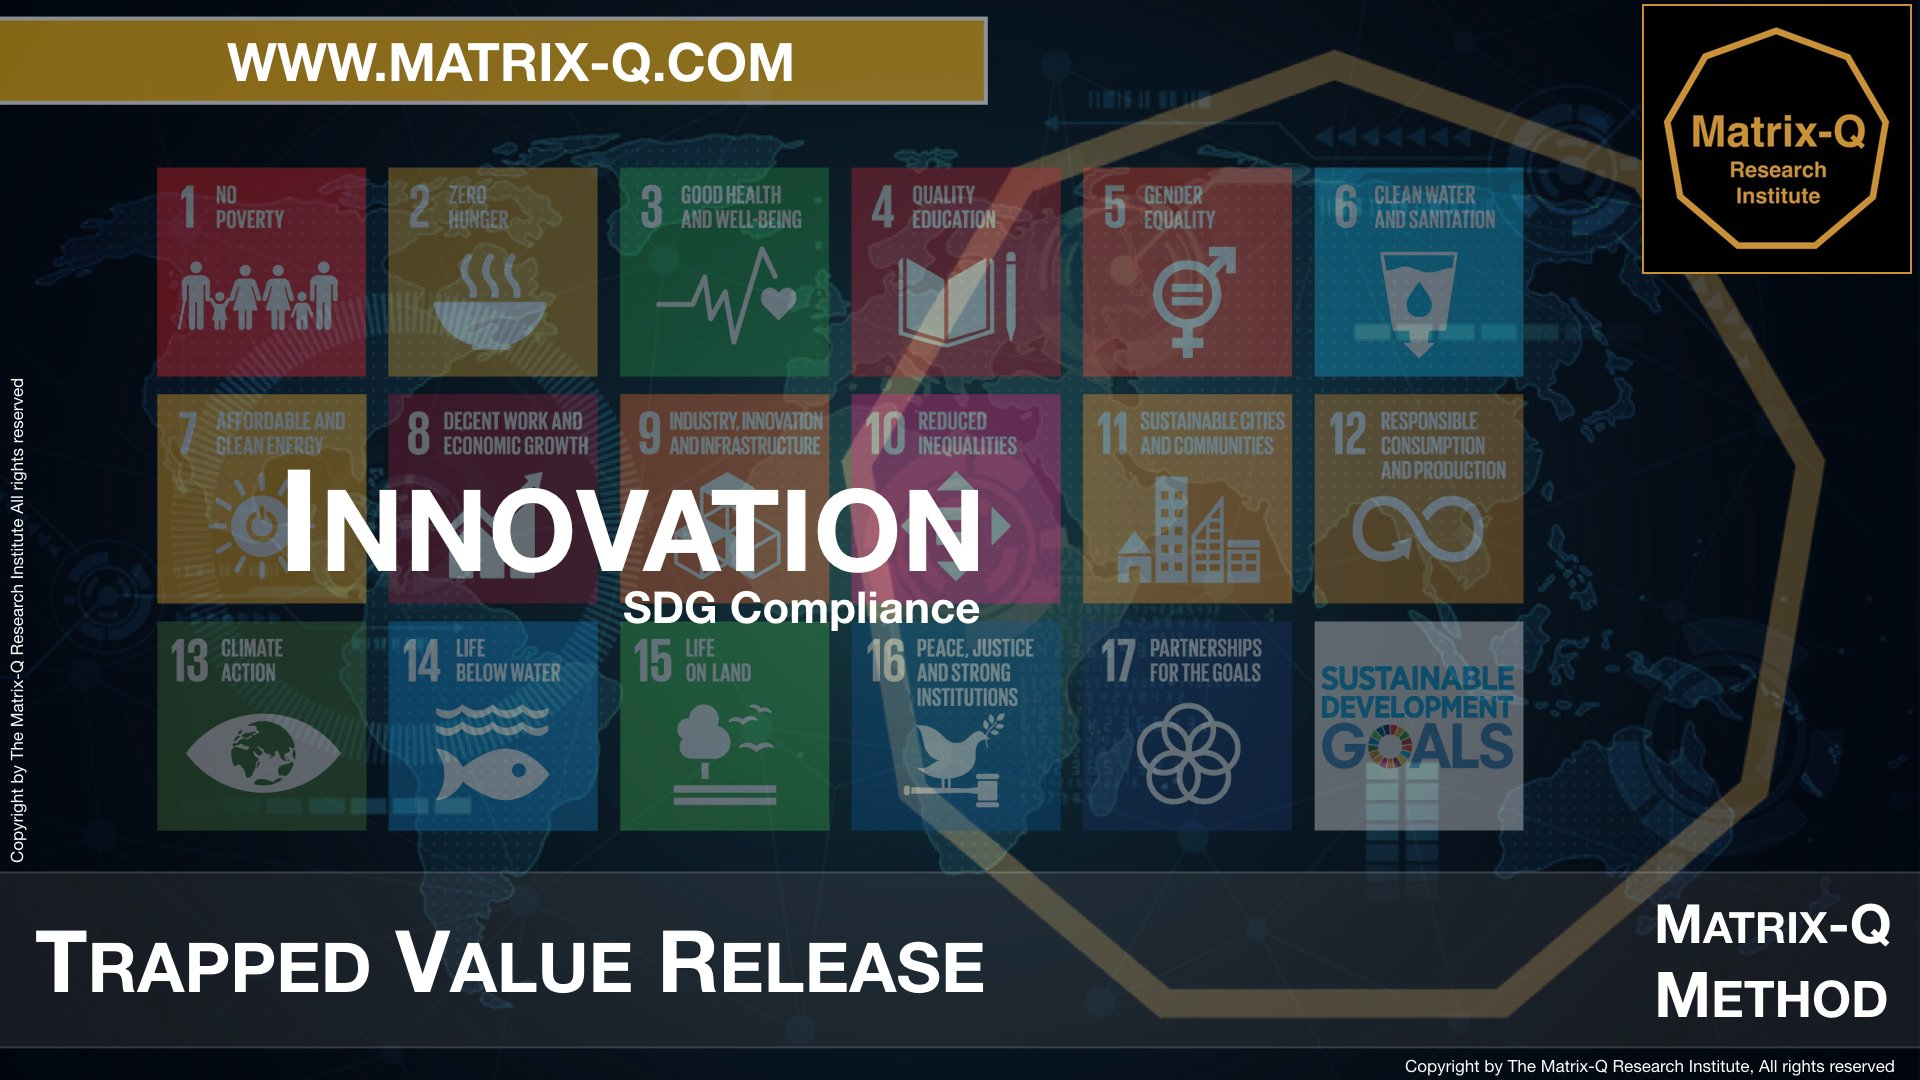 MQRI Matrix-Q Innovation Trapped Value Release.015